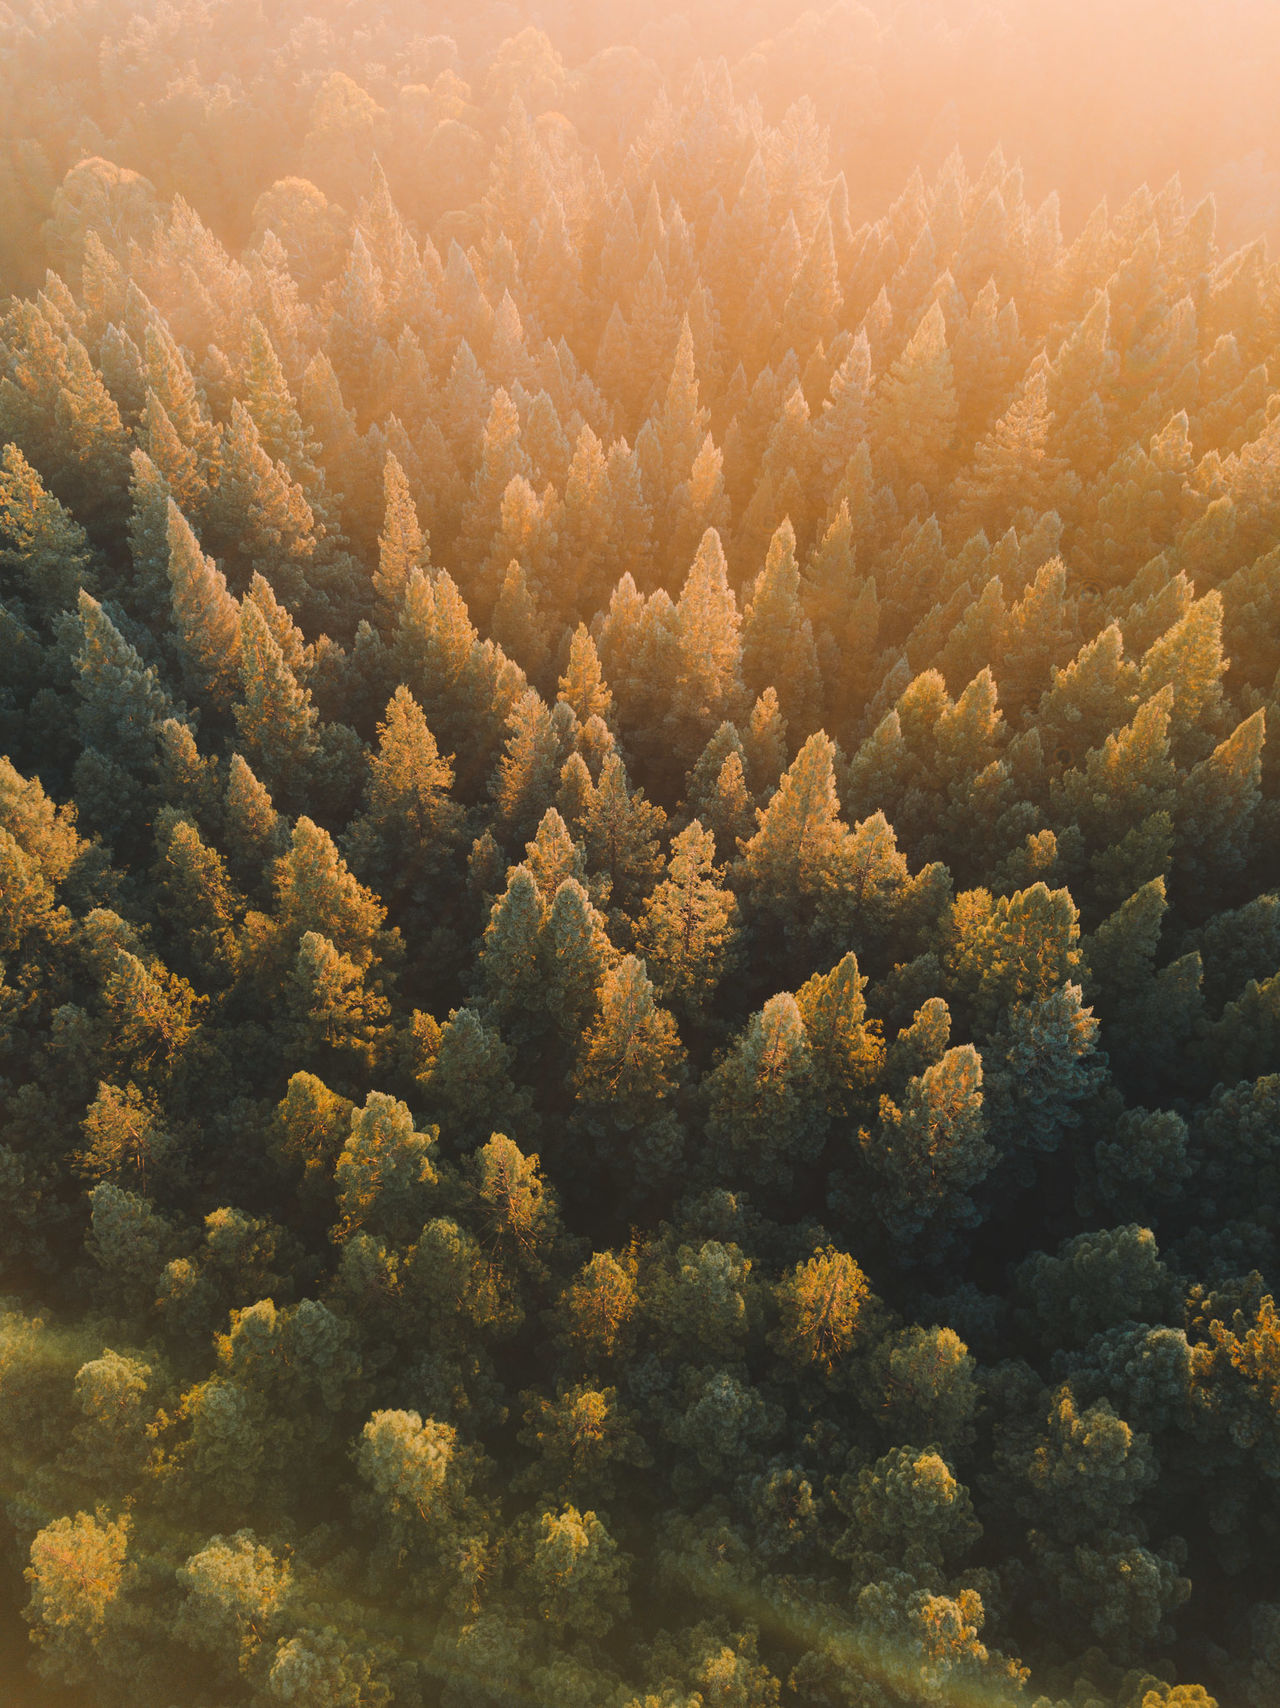 High angle view of trees in forest